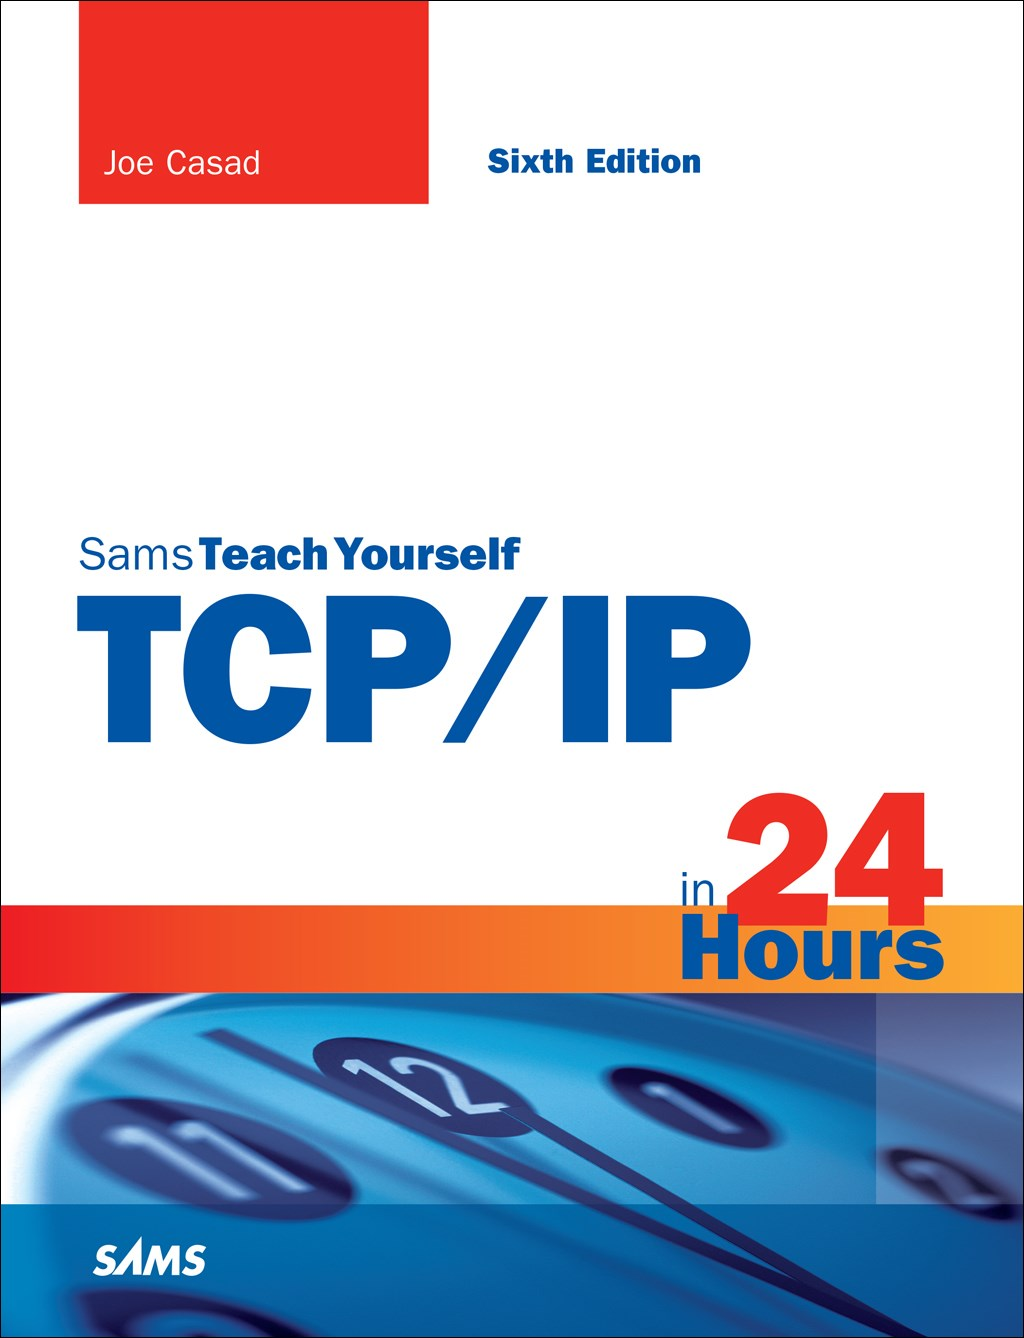 TCP/IP in 24 Hours, Sams Teach Yourself, 6th Edition